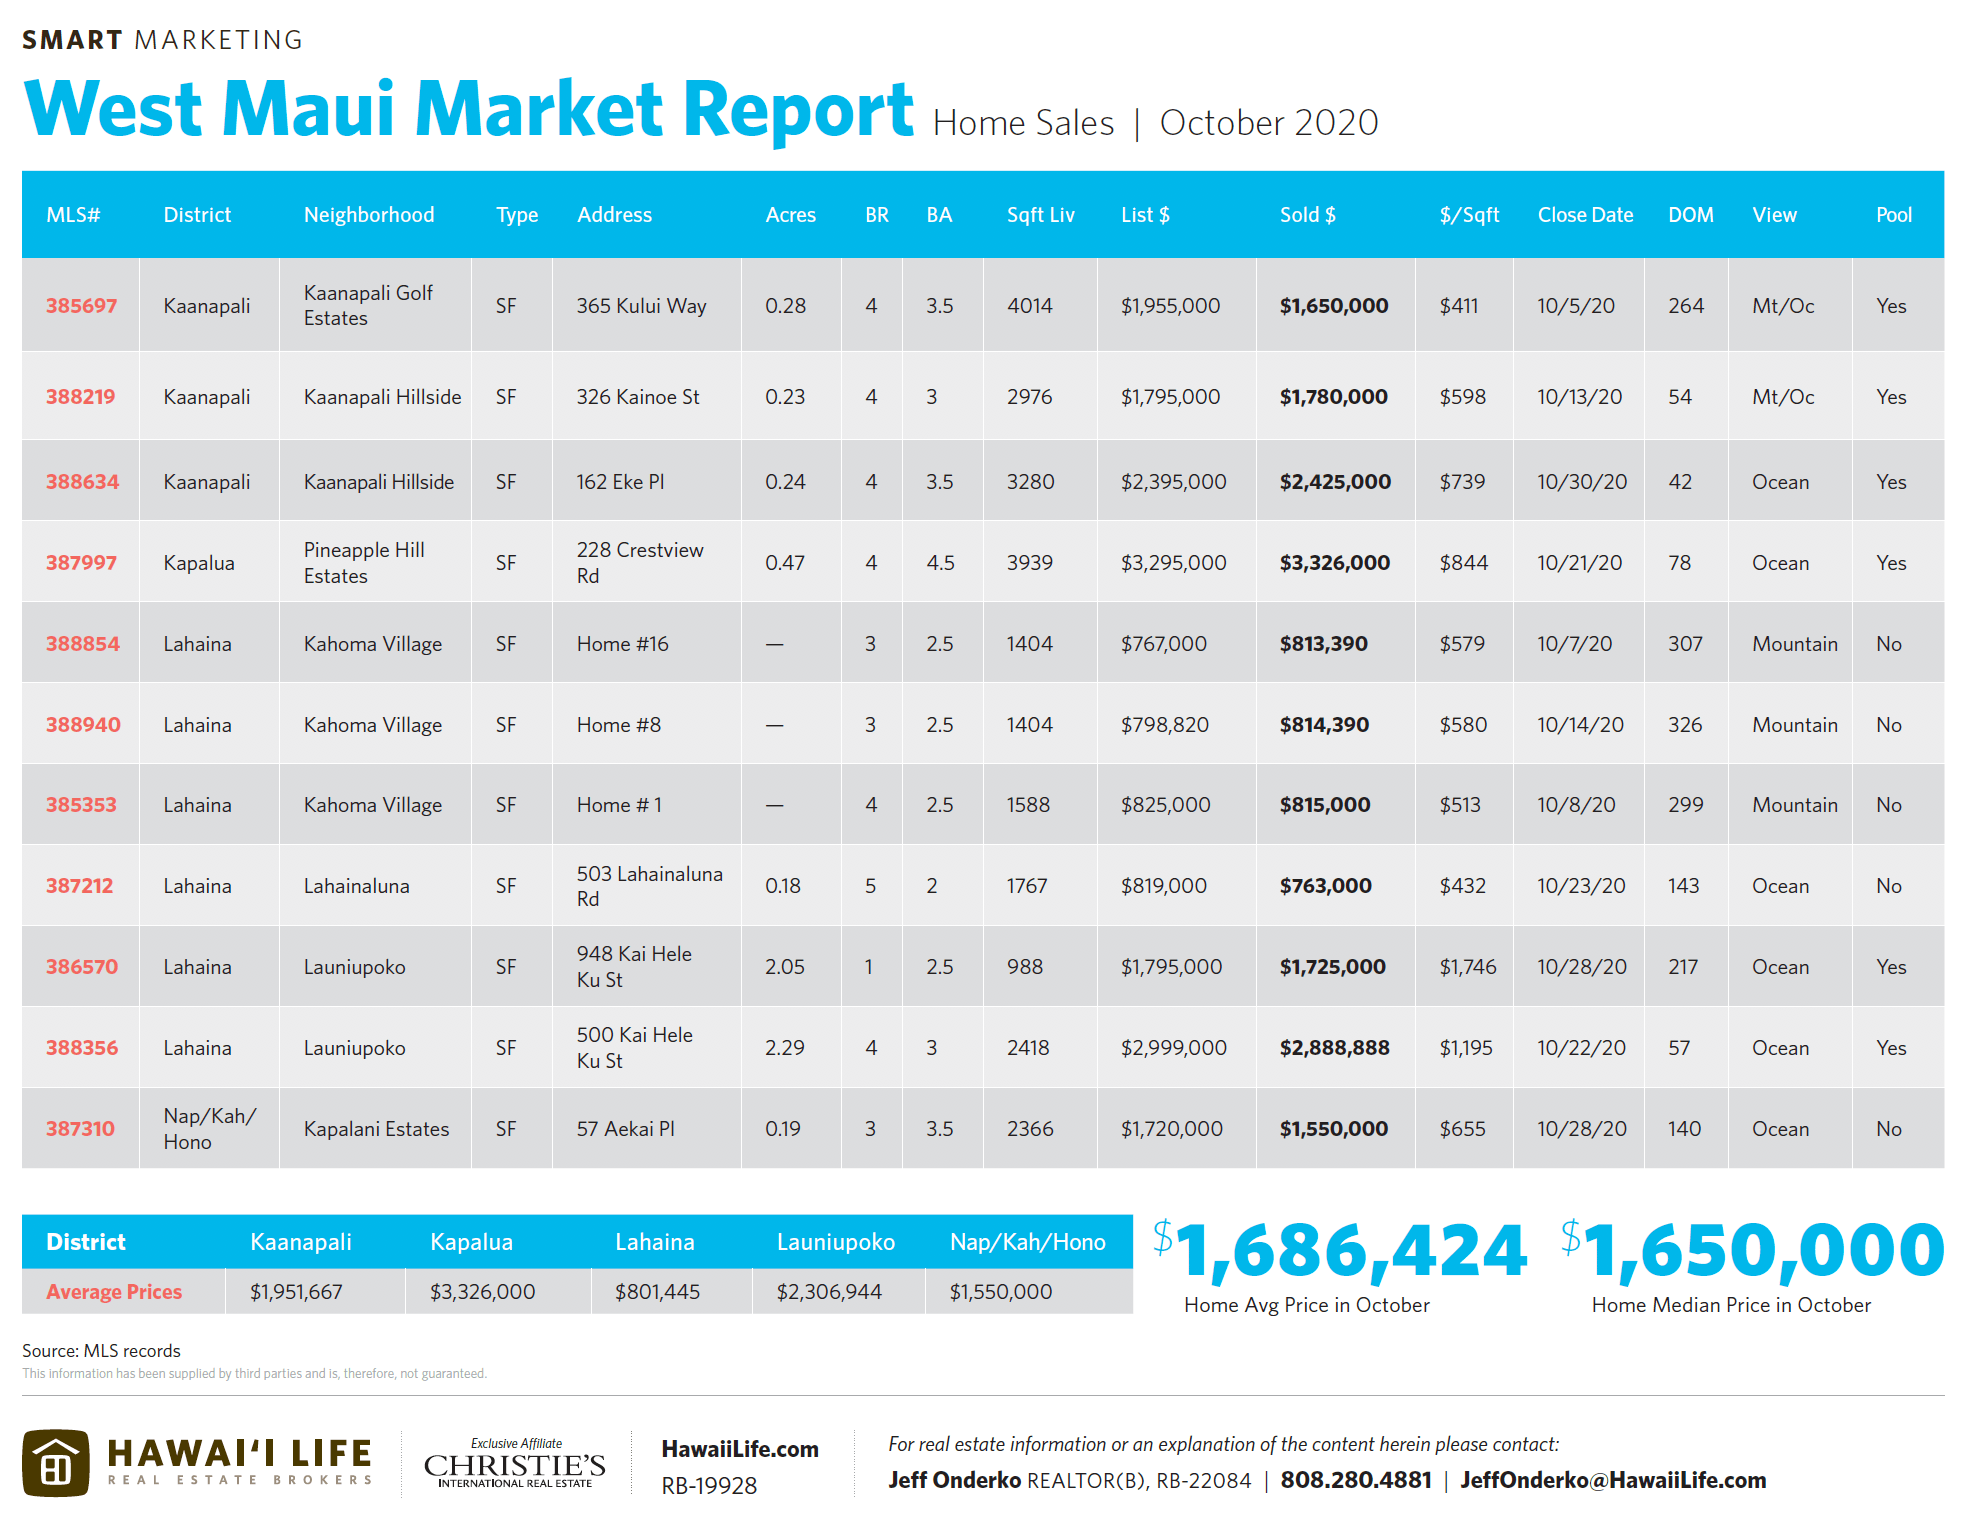 october 2020 west maui home sales chart